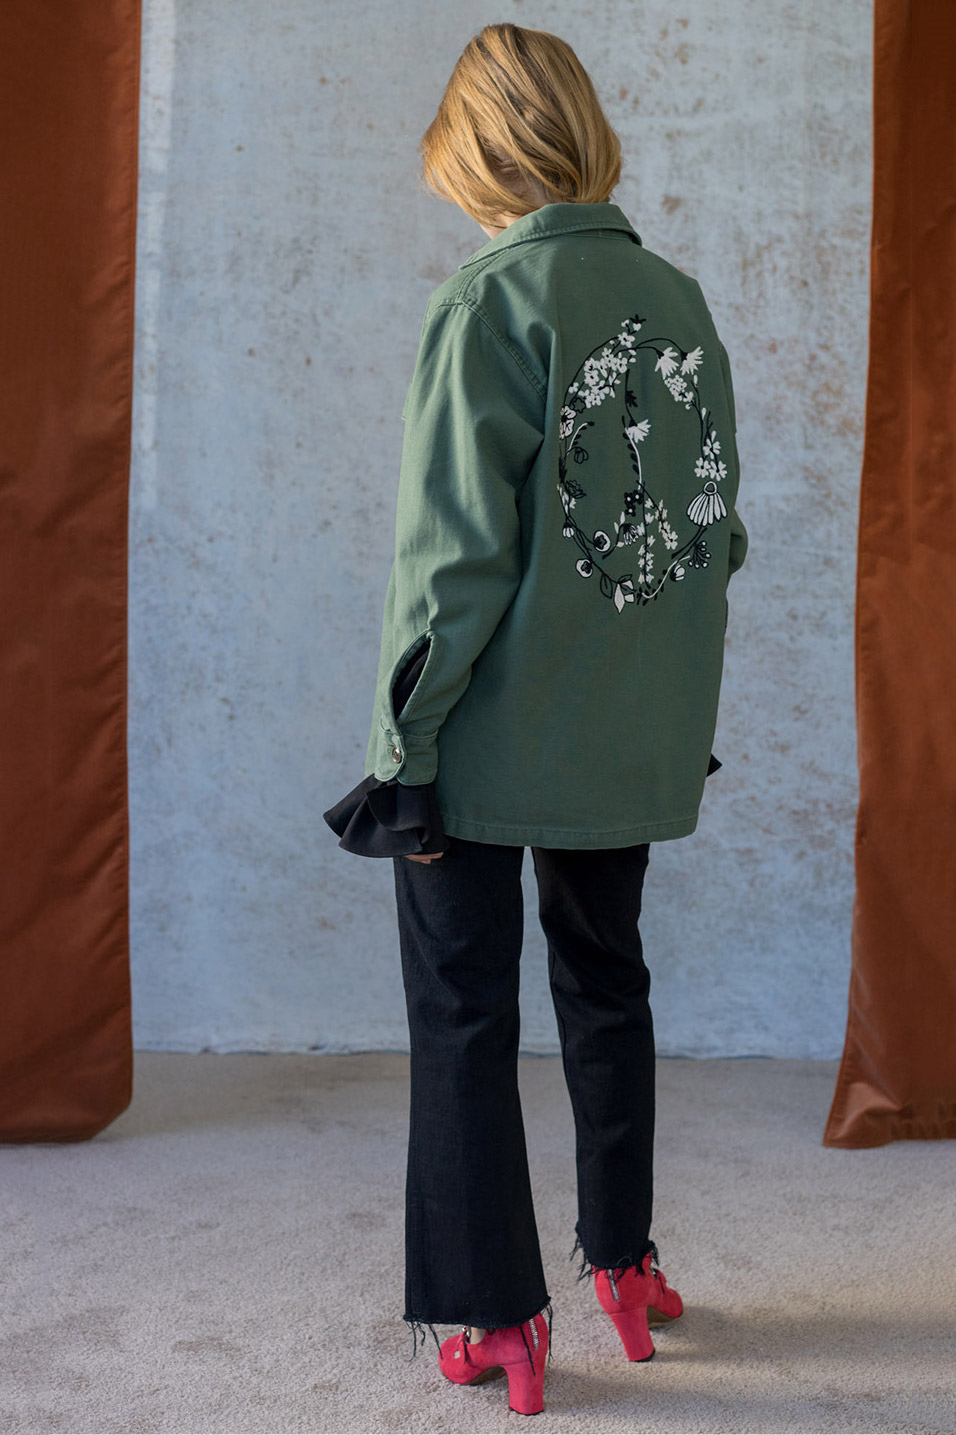 Bliss And Mischief-Sweet Flower Embroidered Army Jacket and Black Sailor Pants